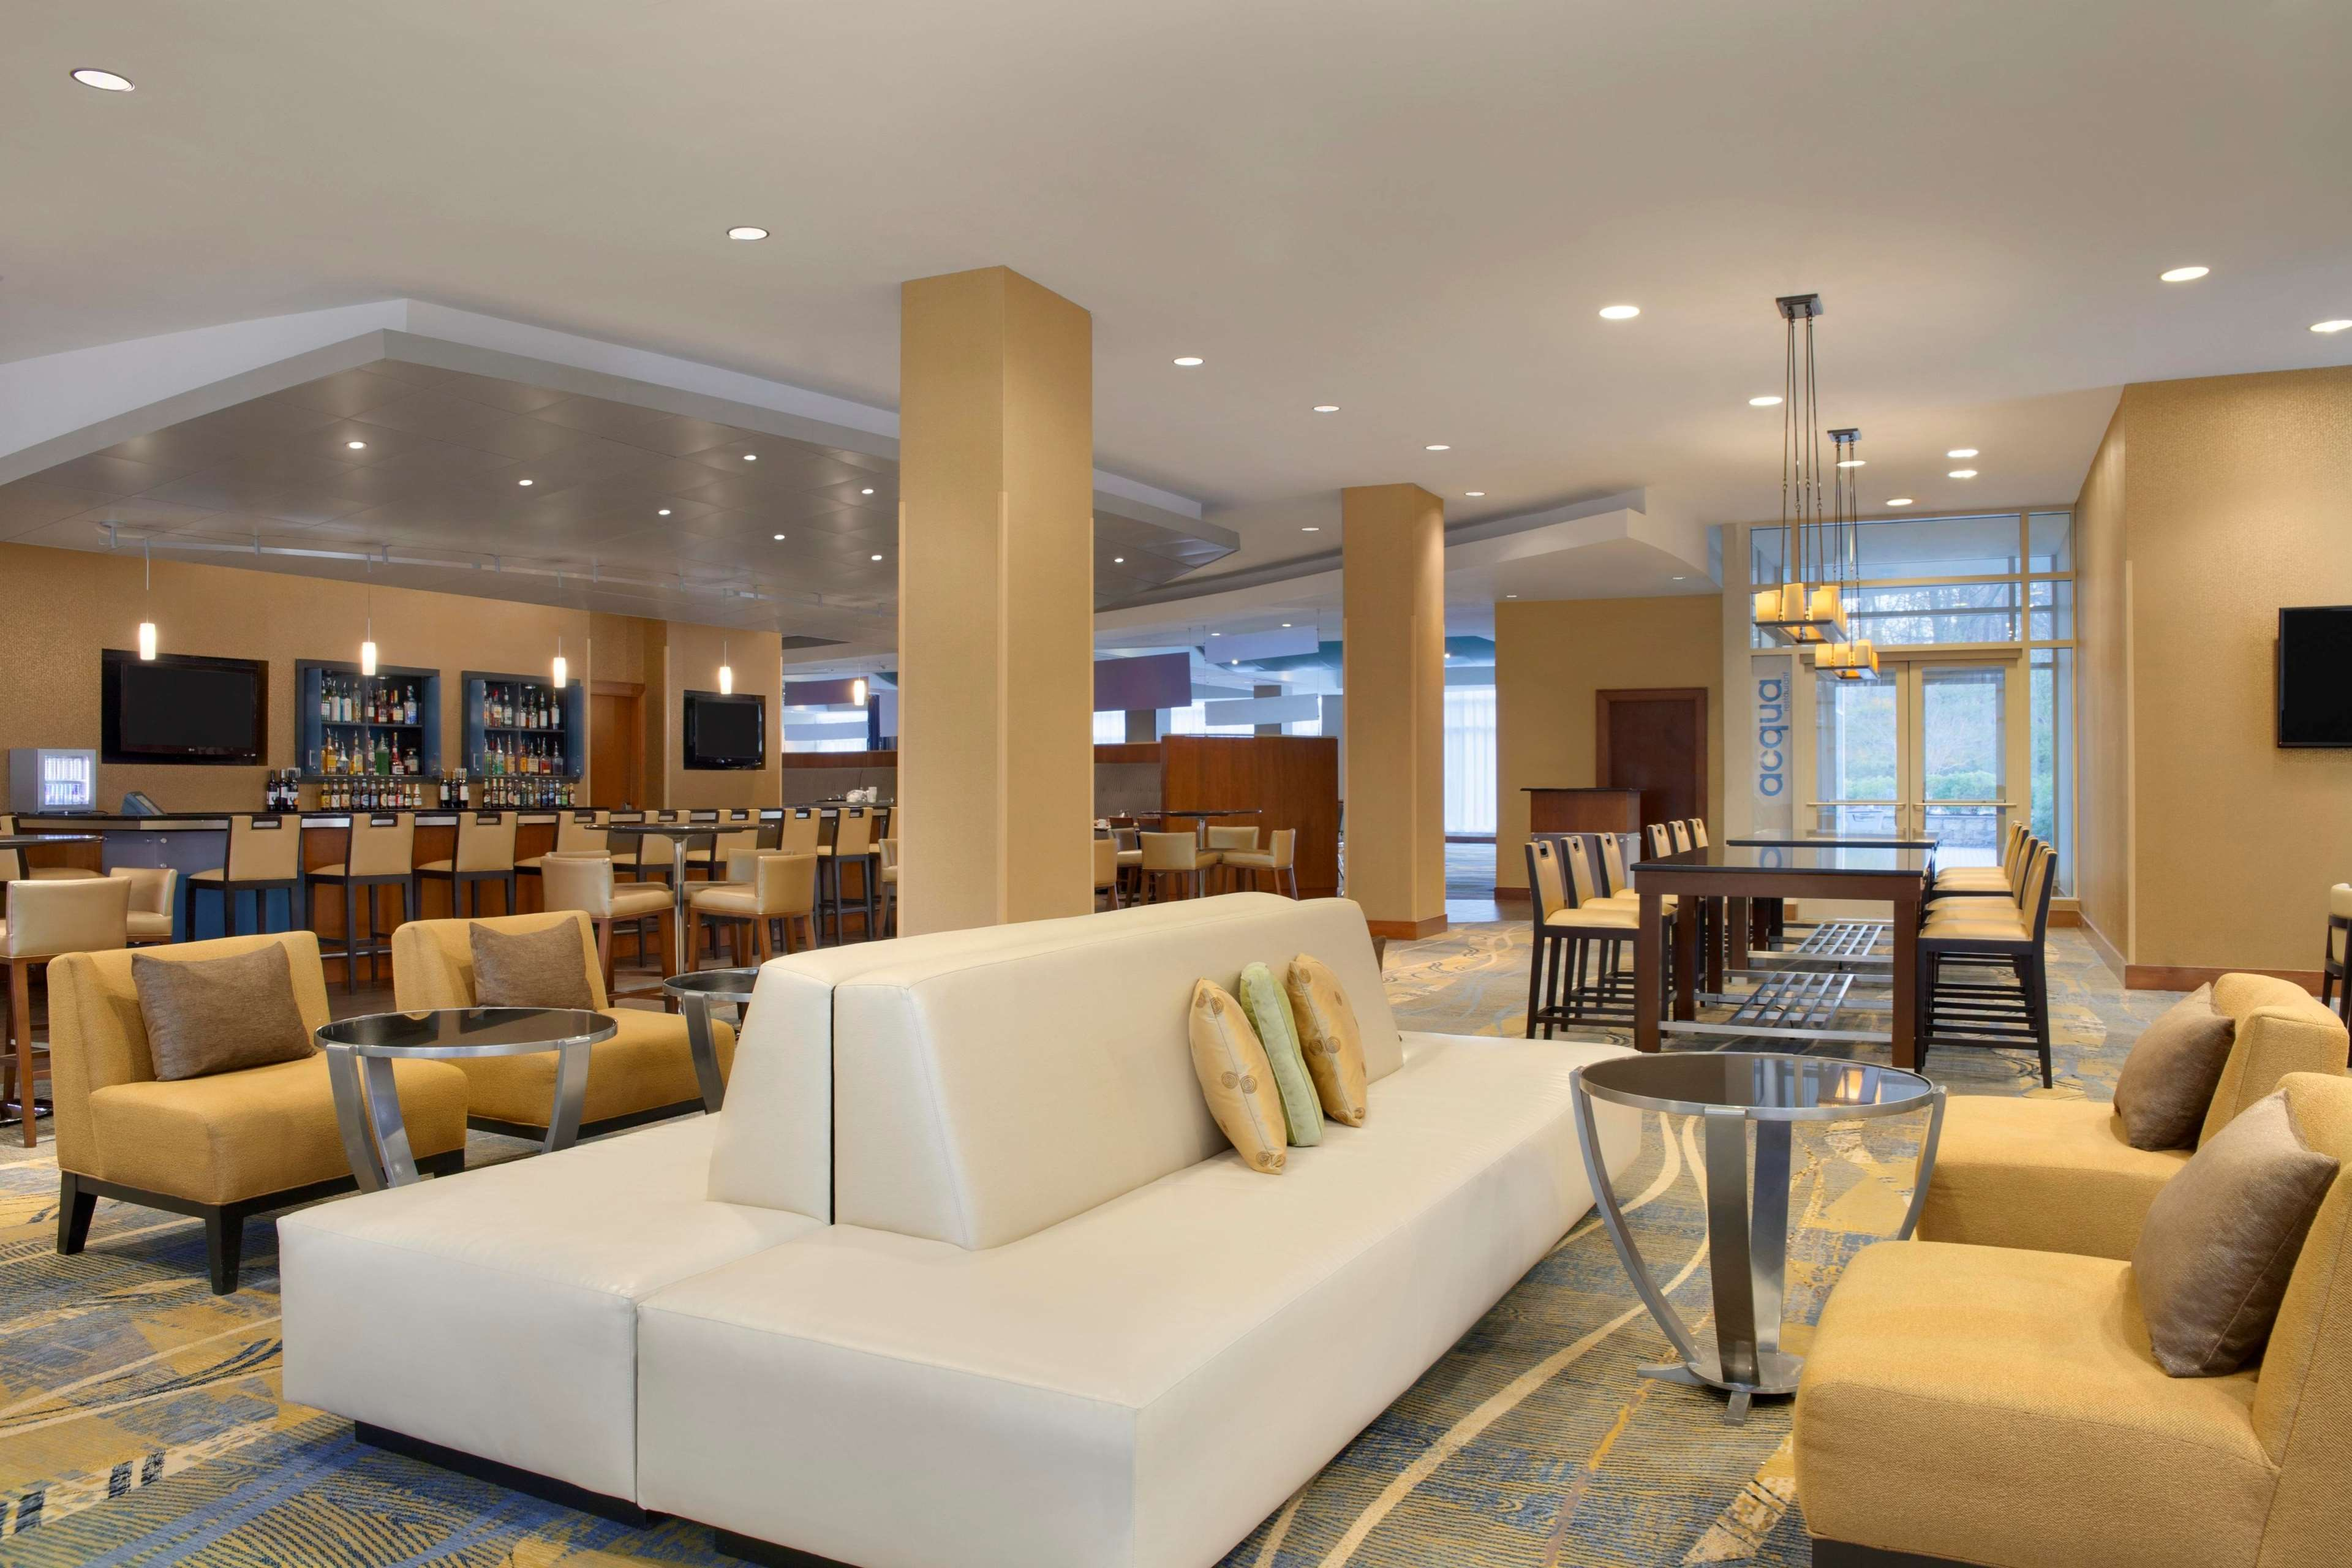 Hotels Near Baltimore Airport With Shuttle Service